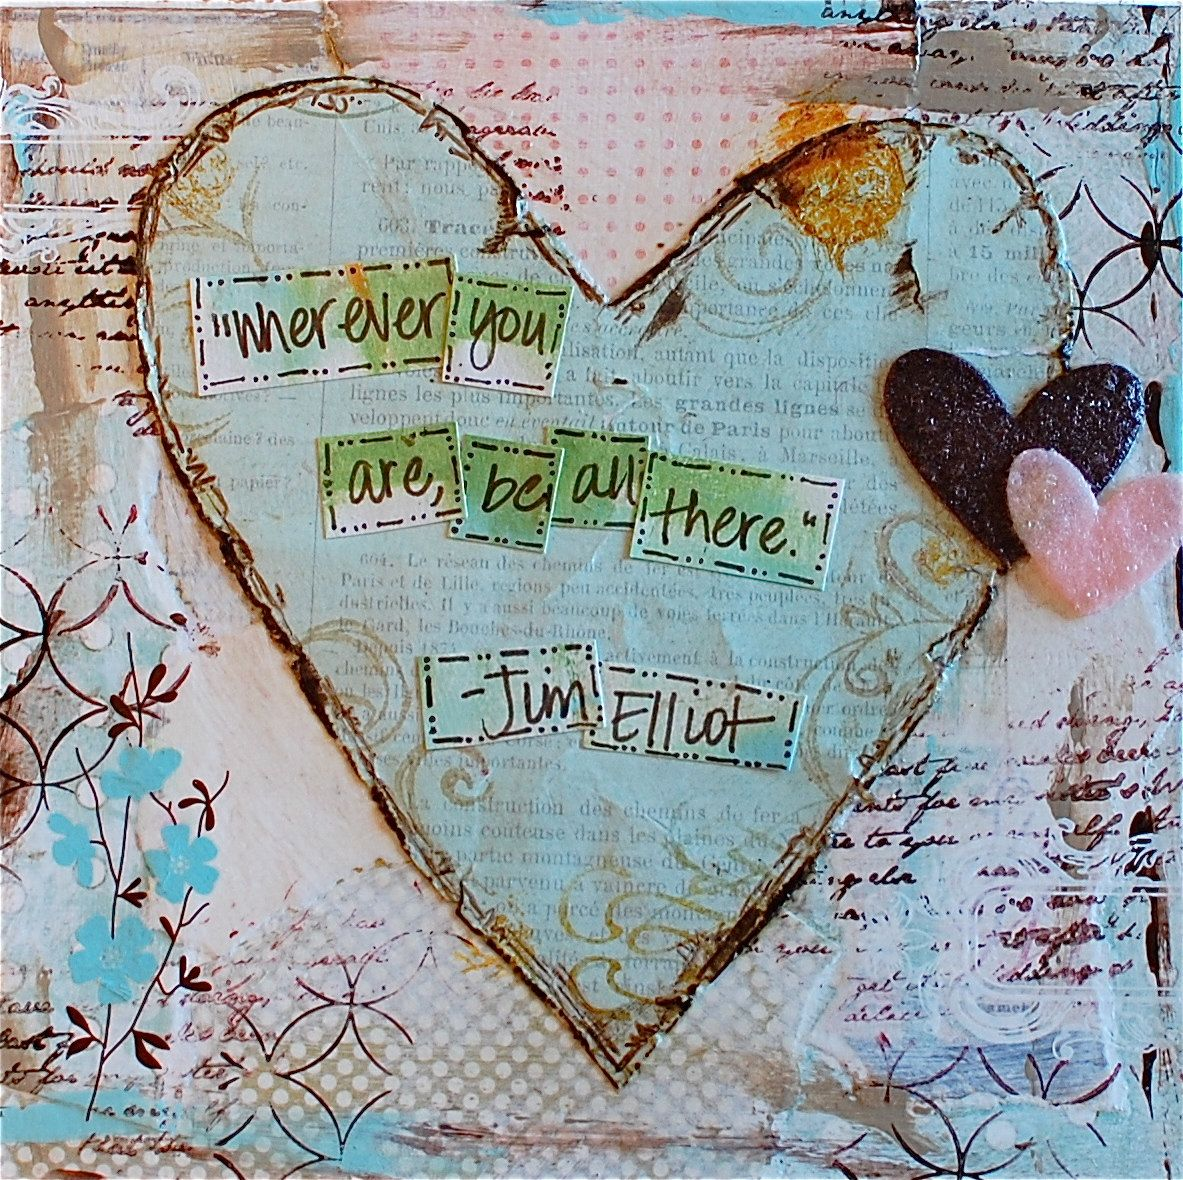 Mission Trip Quotes Where Ever You Are Be All Therejim Elliot Quote On Mixed Media